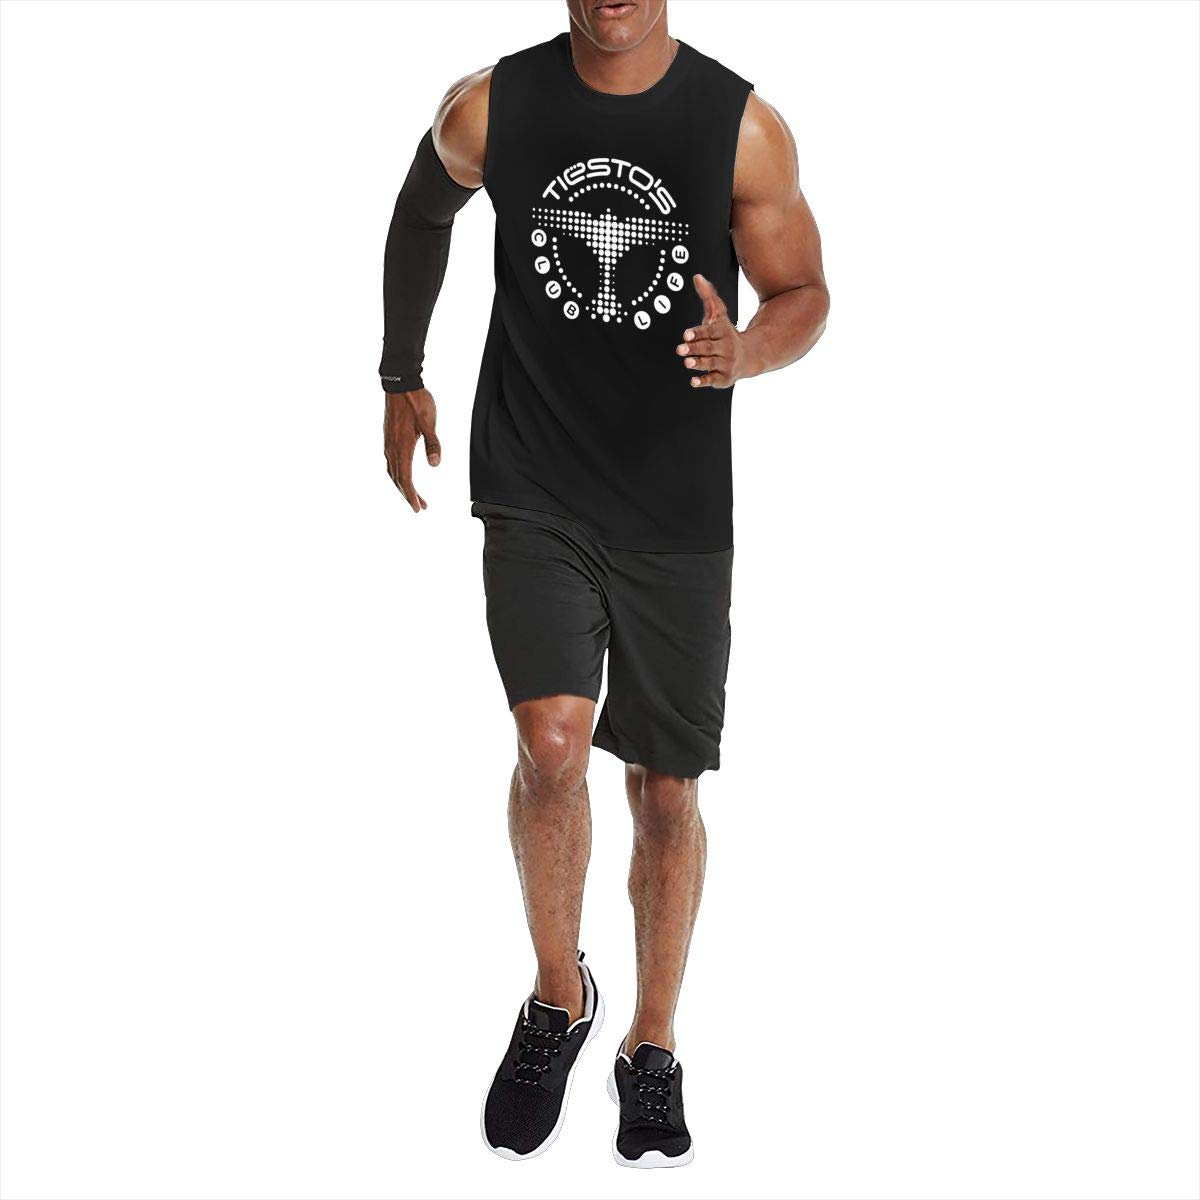 Seuriamin Tiesto Launches The Clublife in Ear Men Casual Hiking Short Sleeve T-Shirt